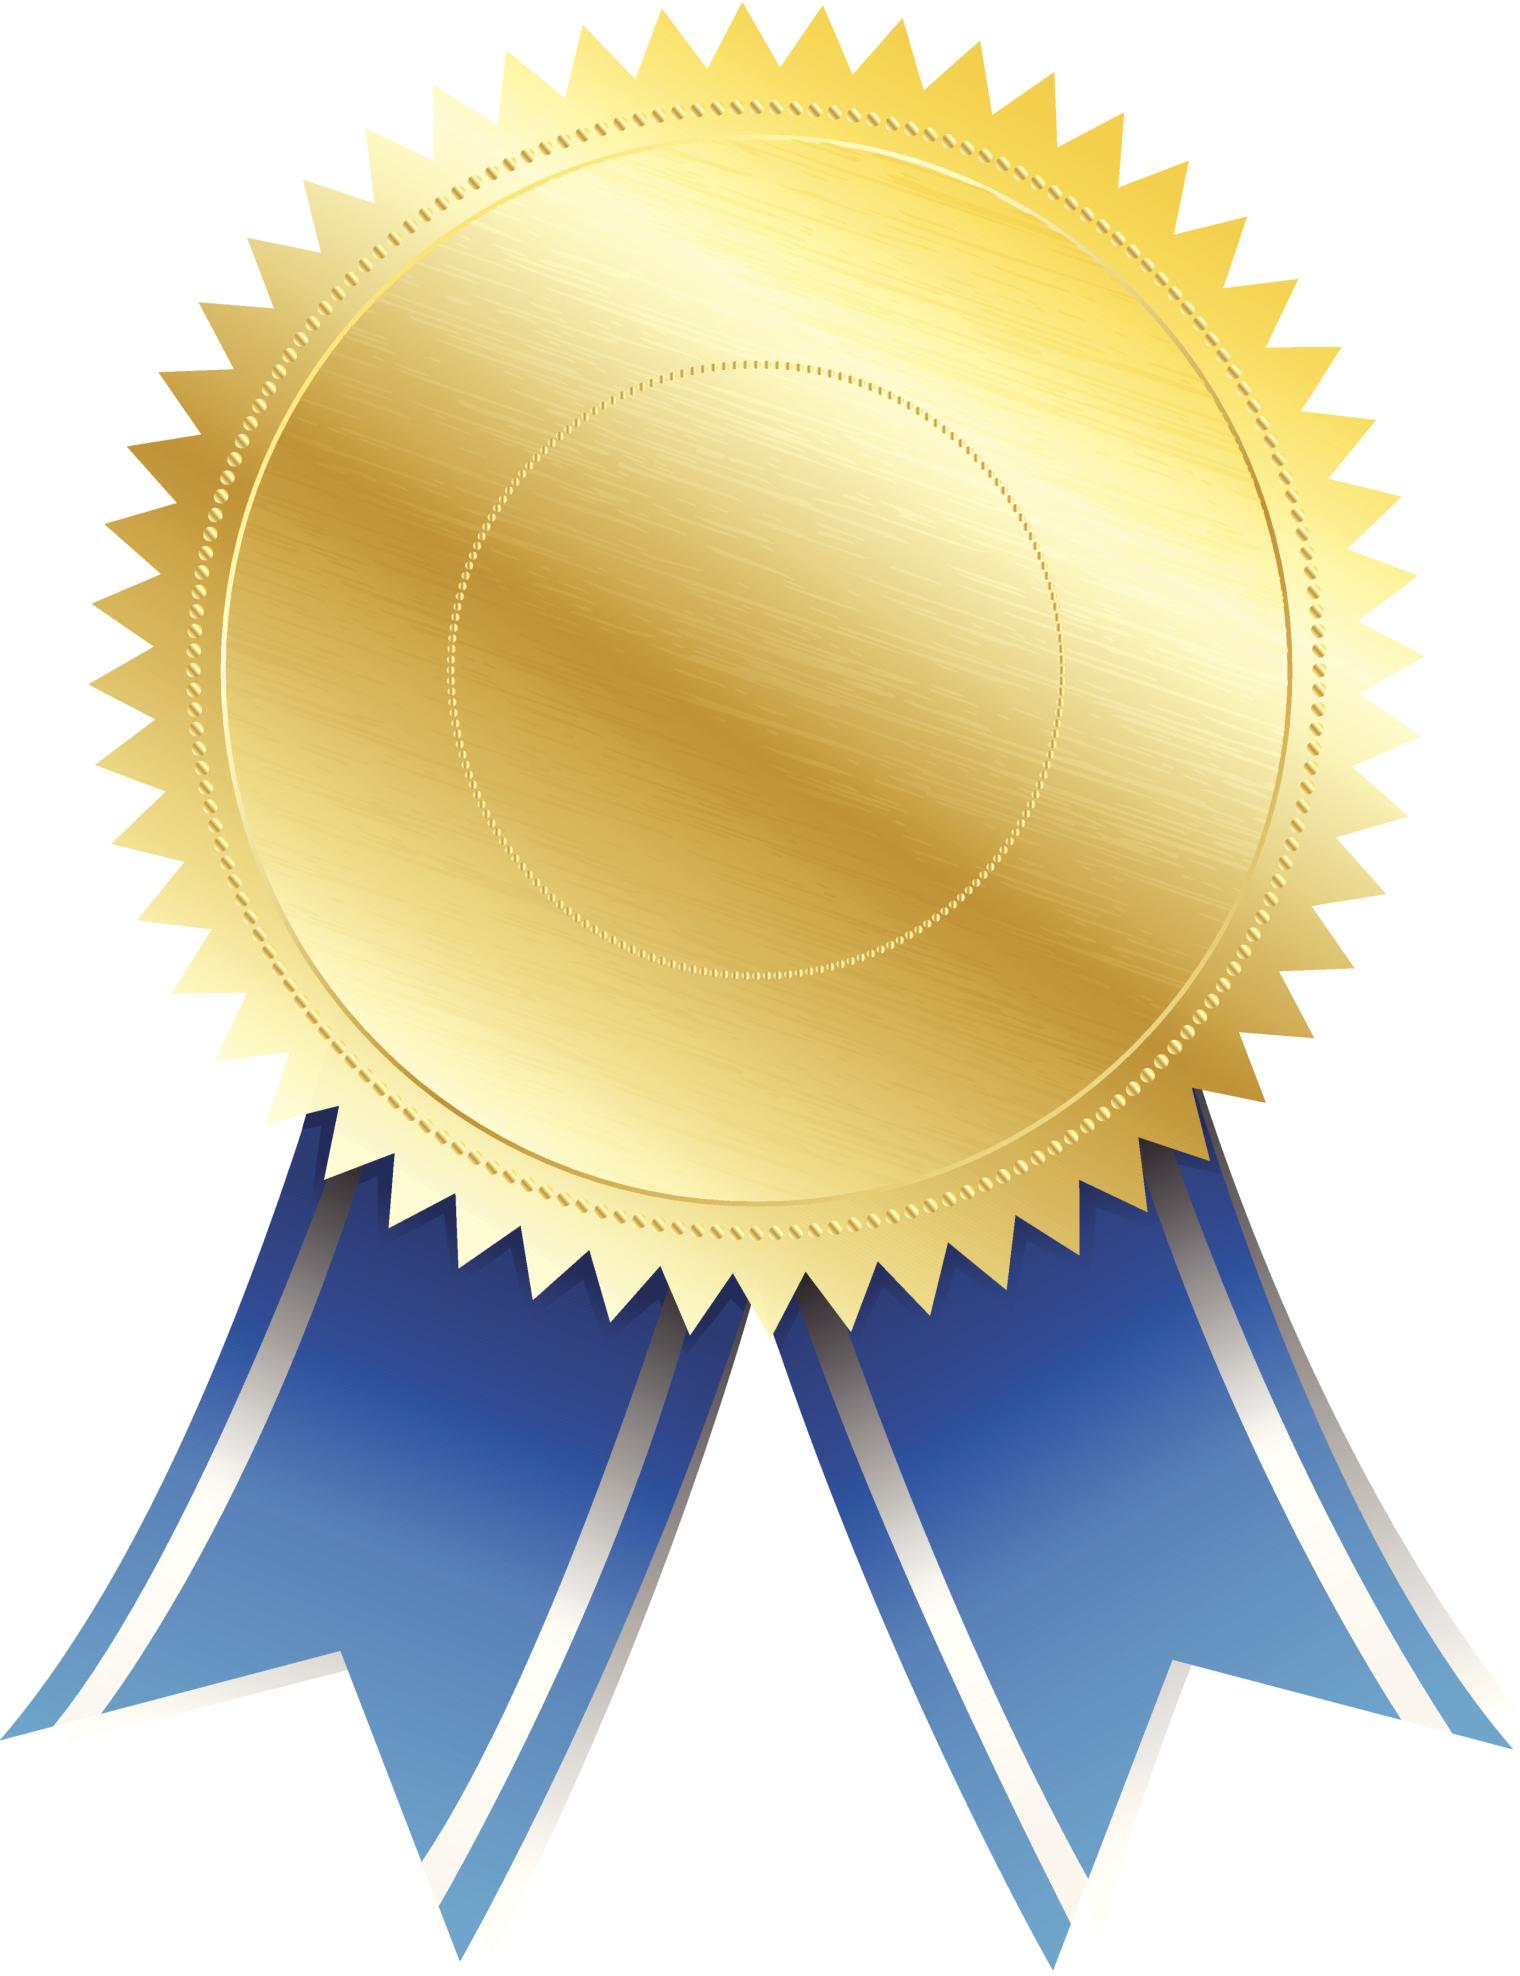 collection of medal. Award clipart transparent background